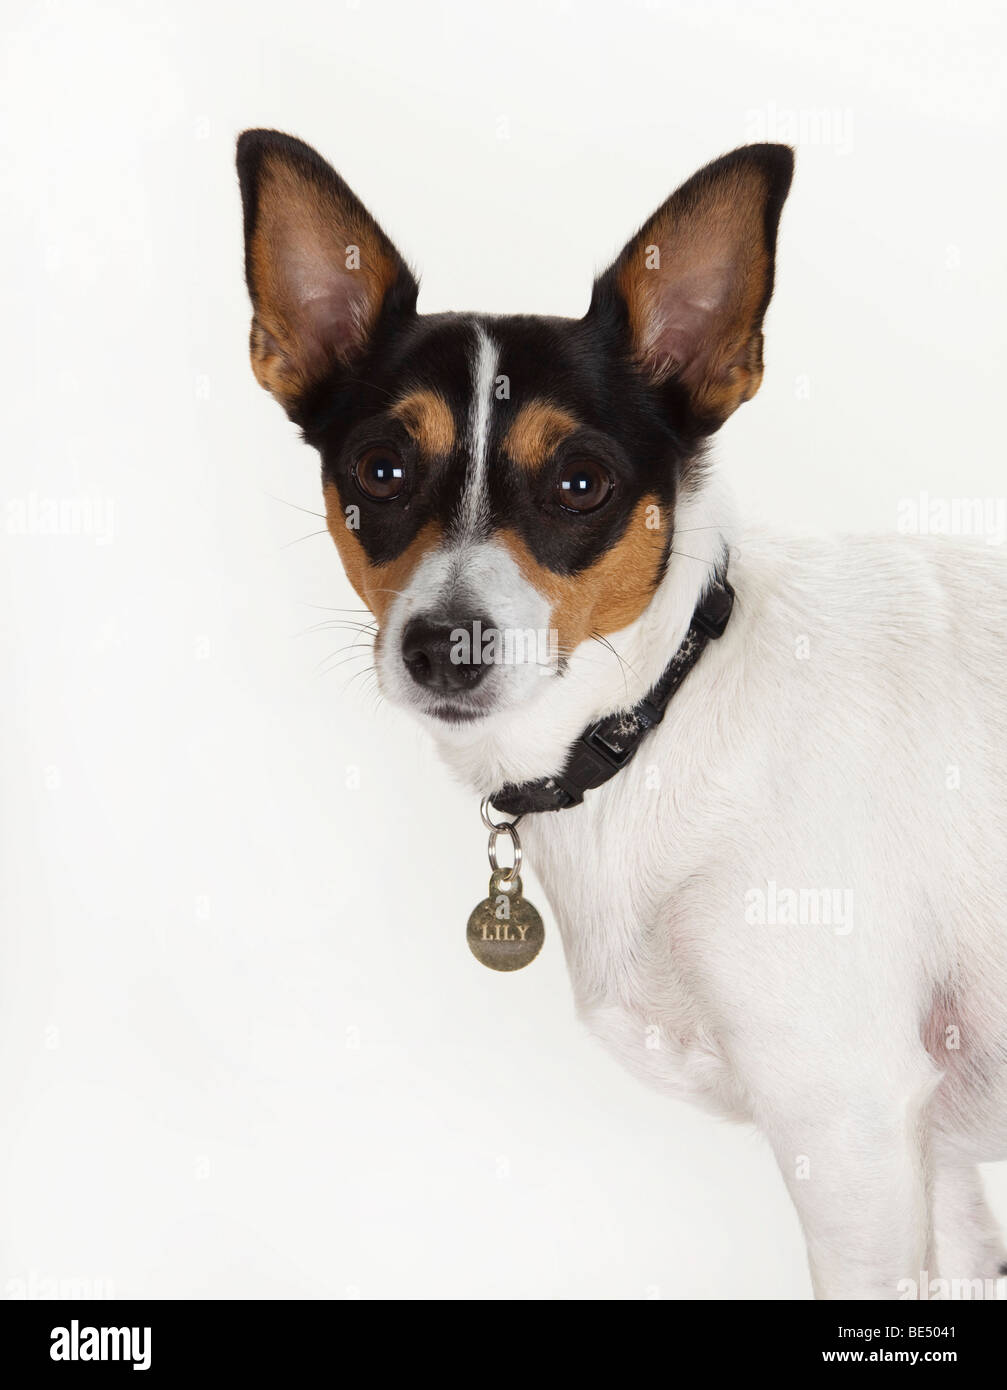 Name For A Female Dog With Pointy Ears